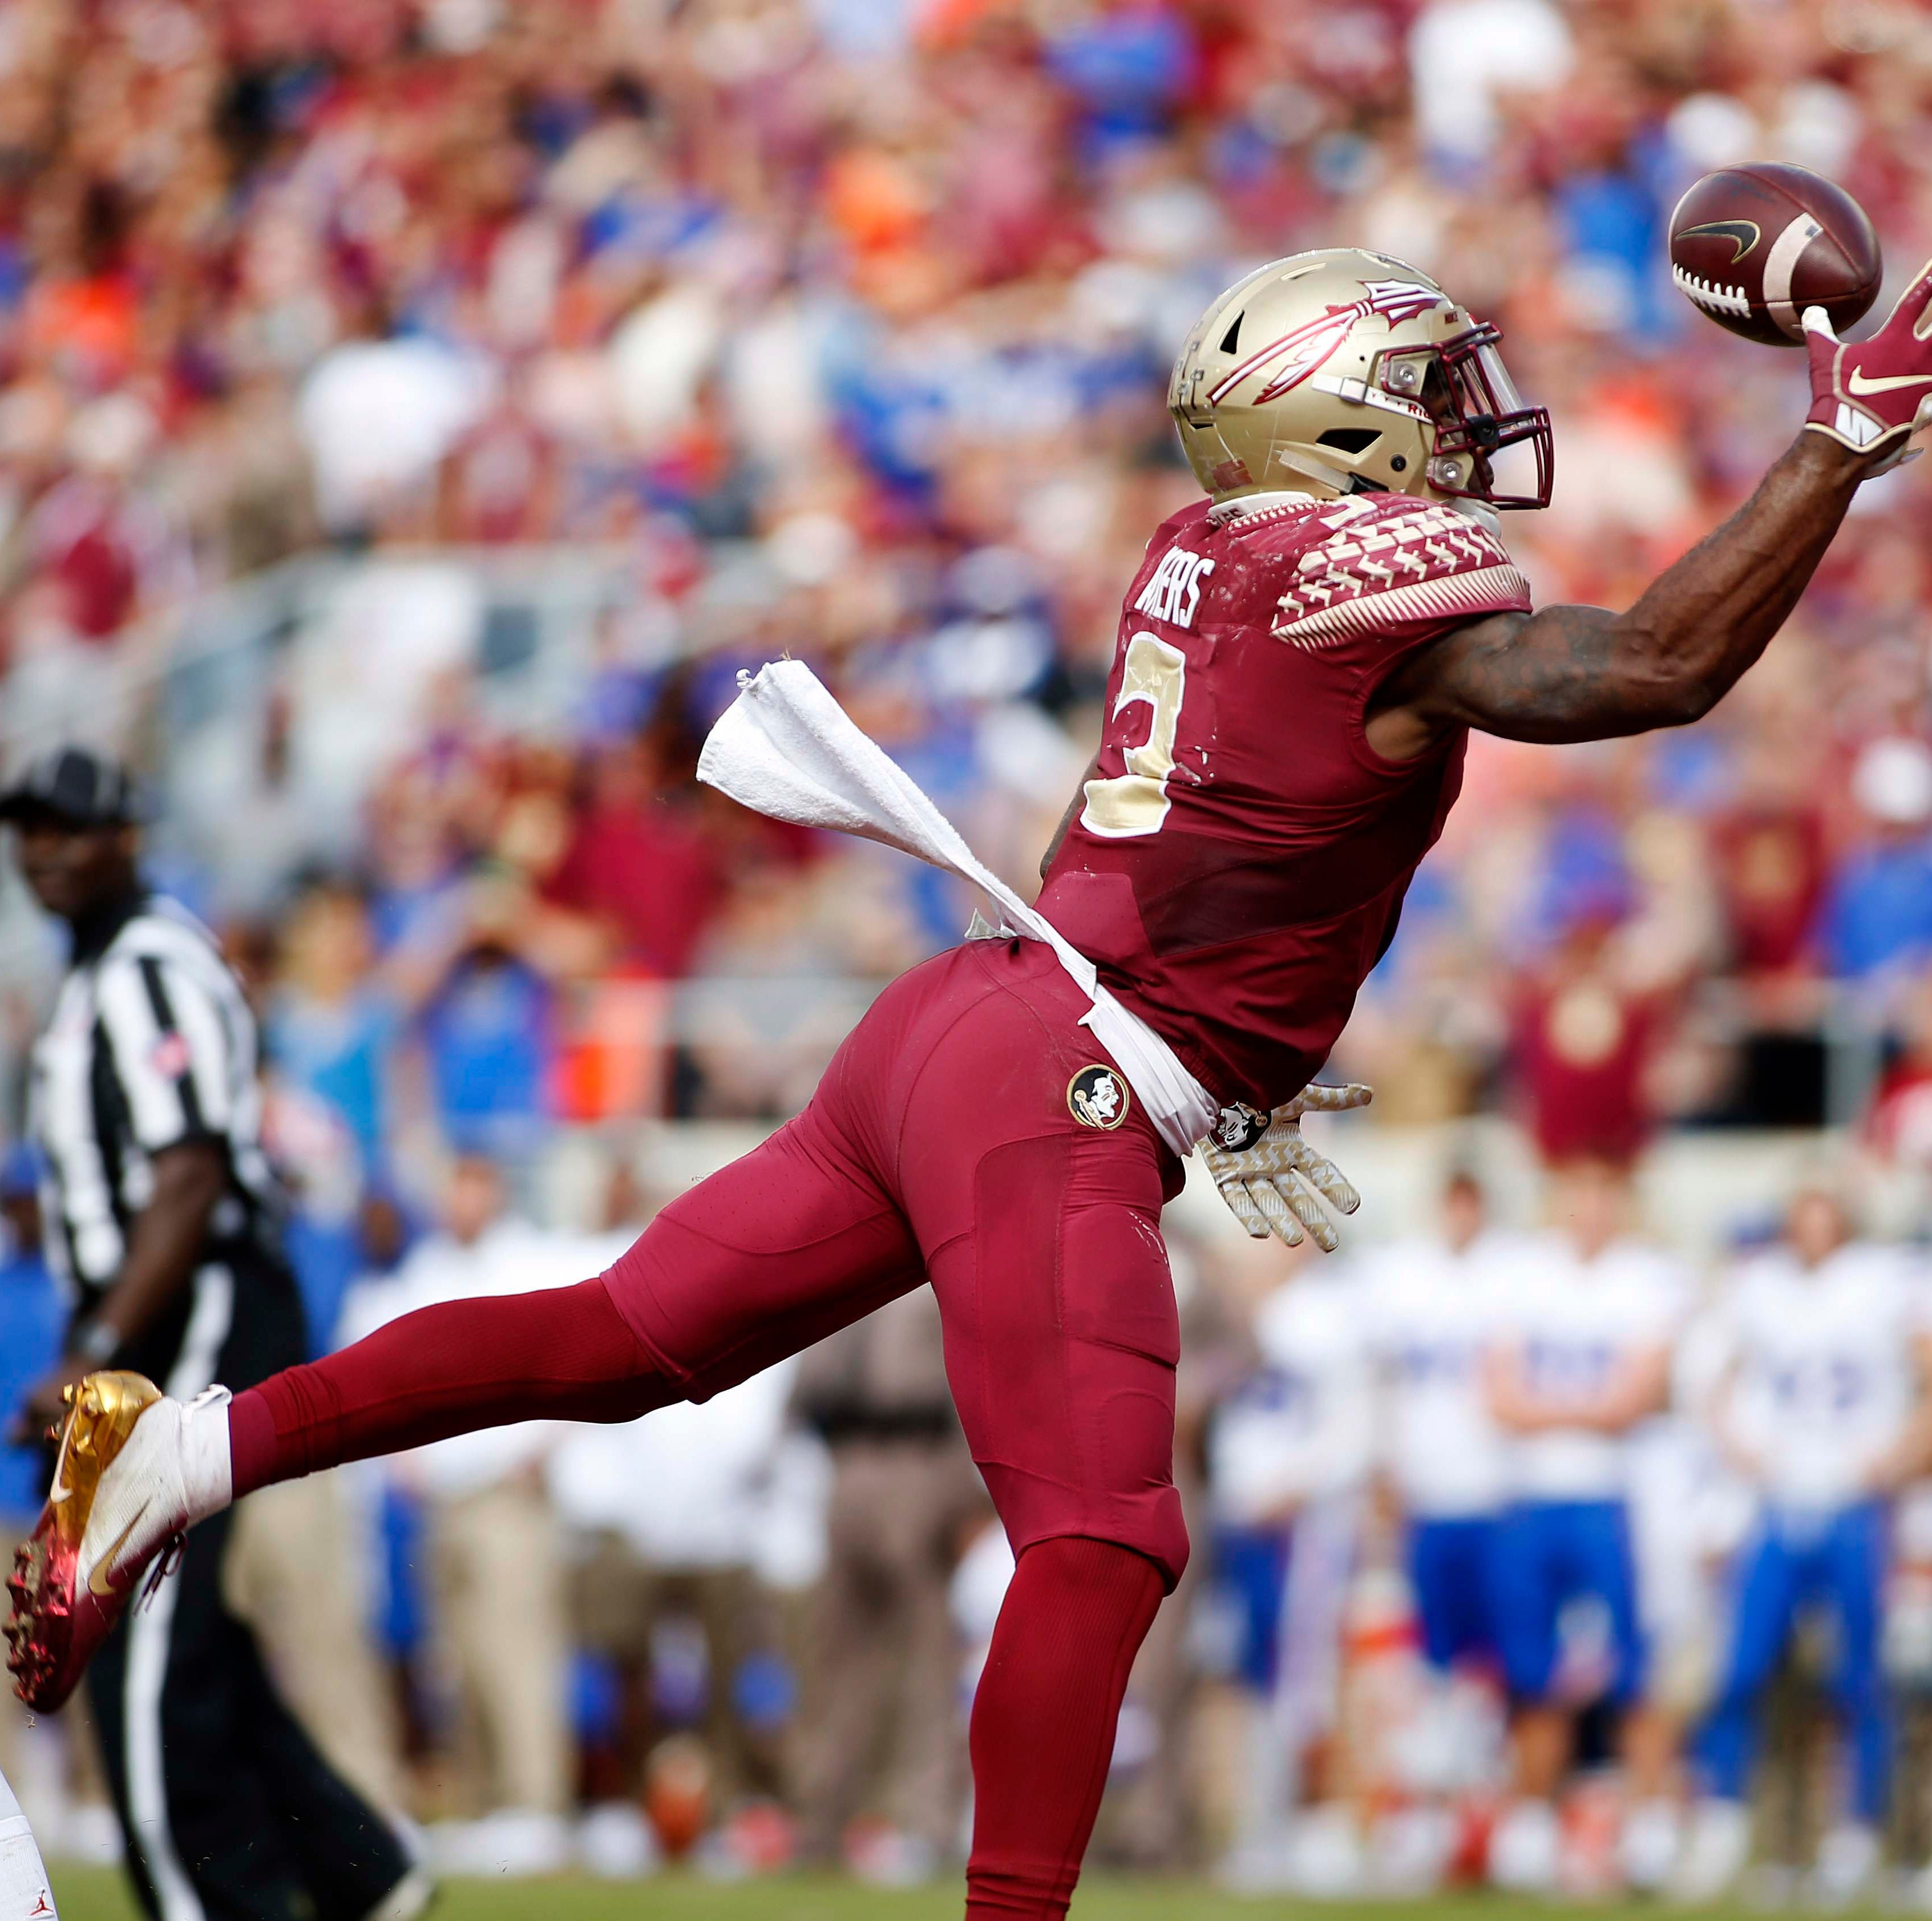 Florida State to offer flexible ticket options for the 2019 football season